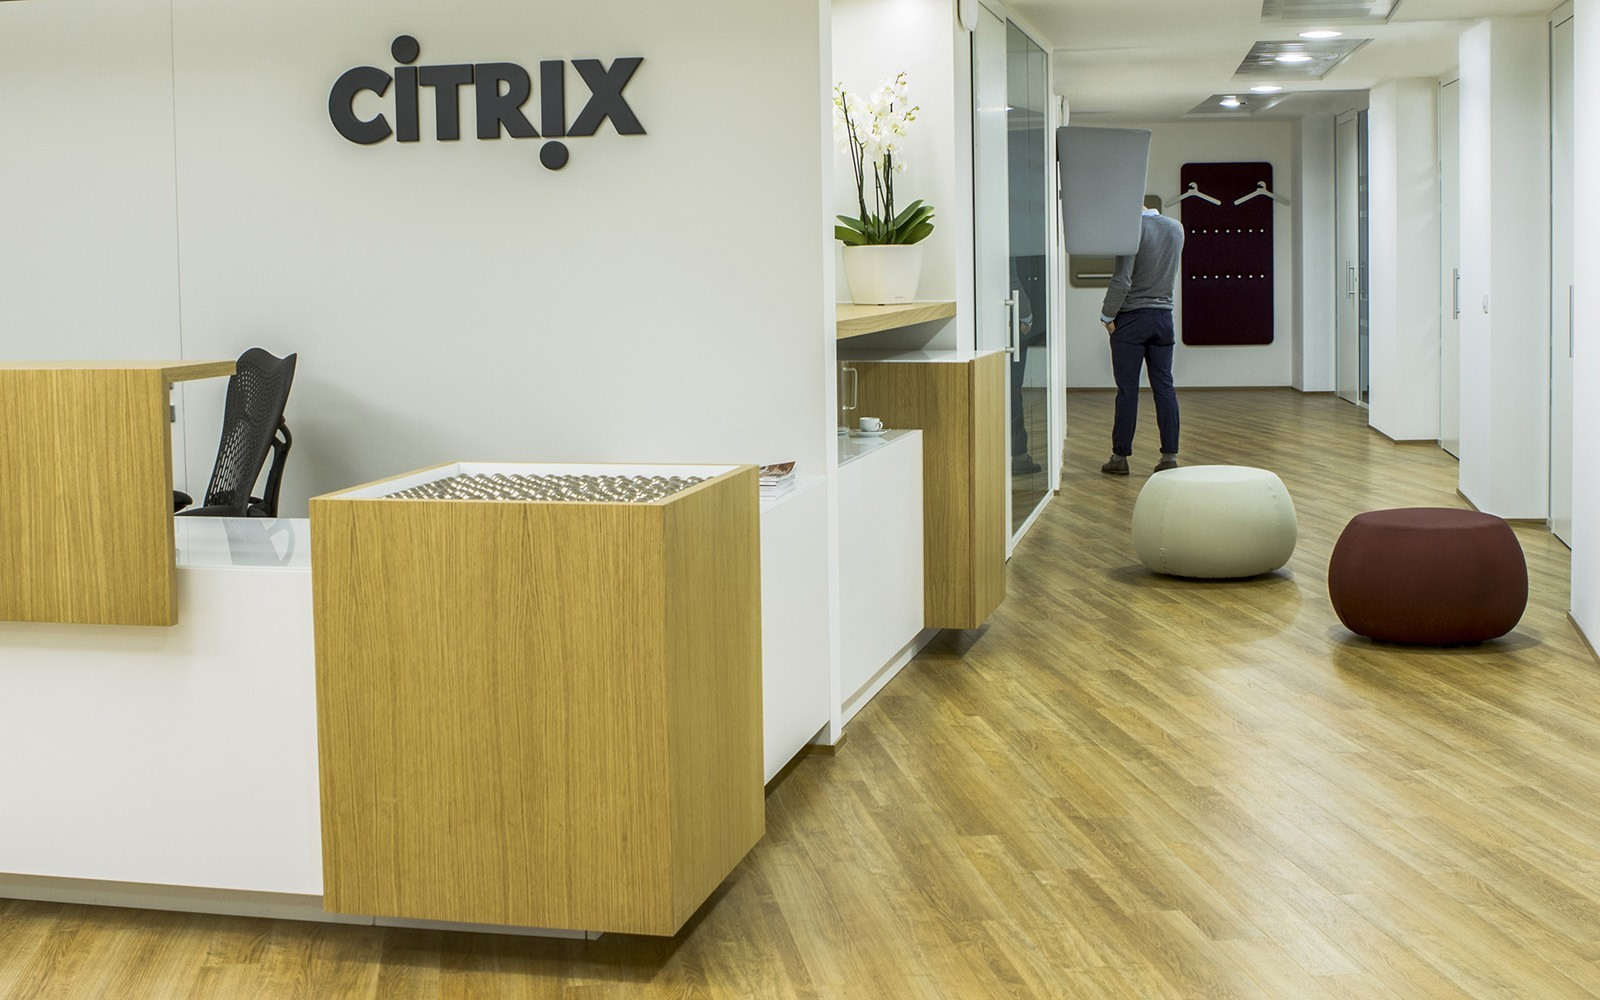 citrix-italy-office-3